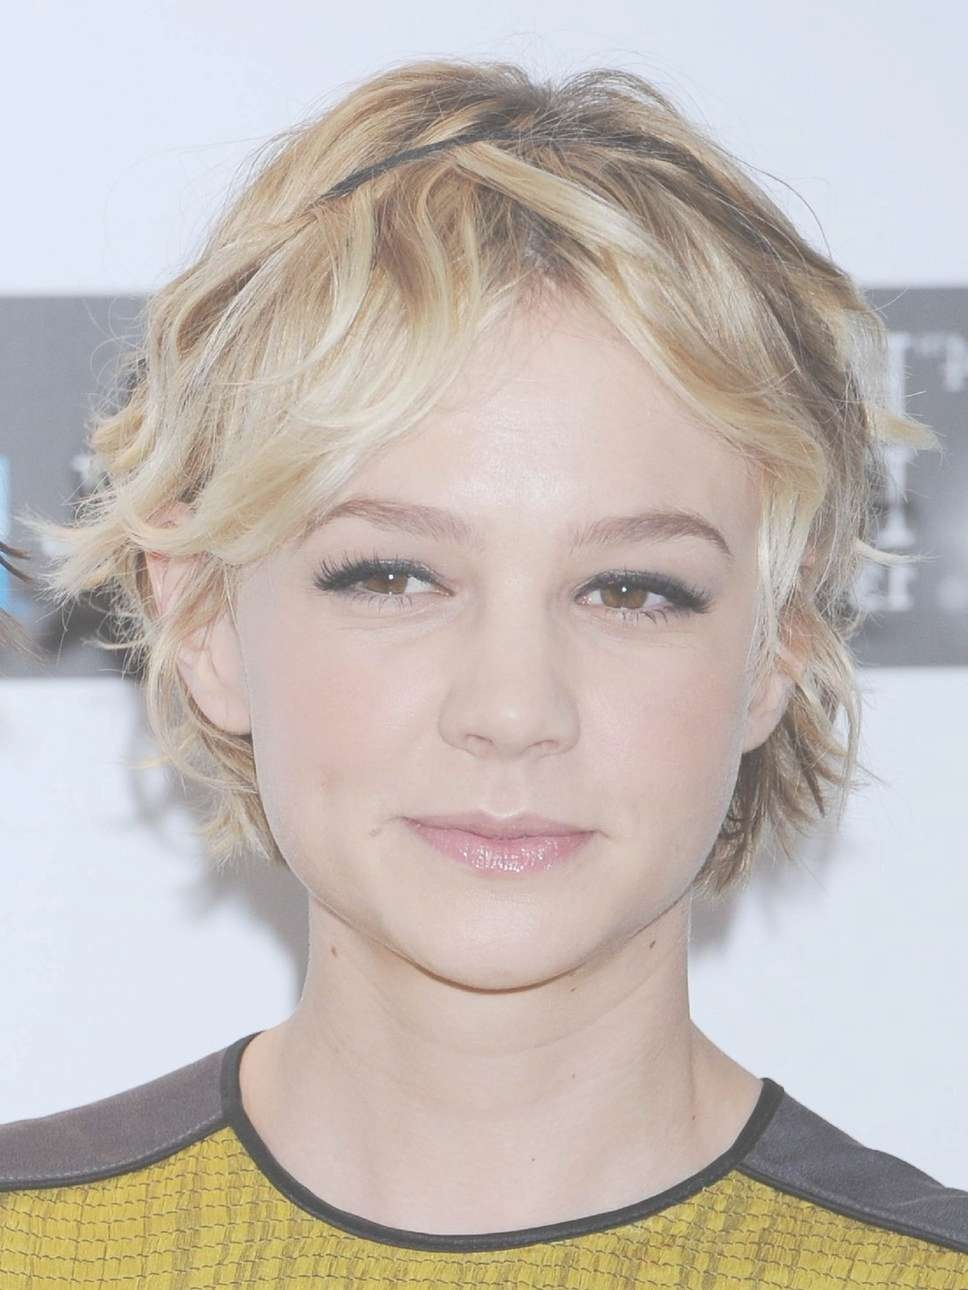 Carey Mulligan New Pixie Hairstyles – Fashionista Trends Regarding 2018 Actress Pixie Hairstyles (View 6 of 15)